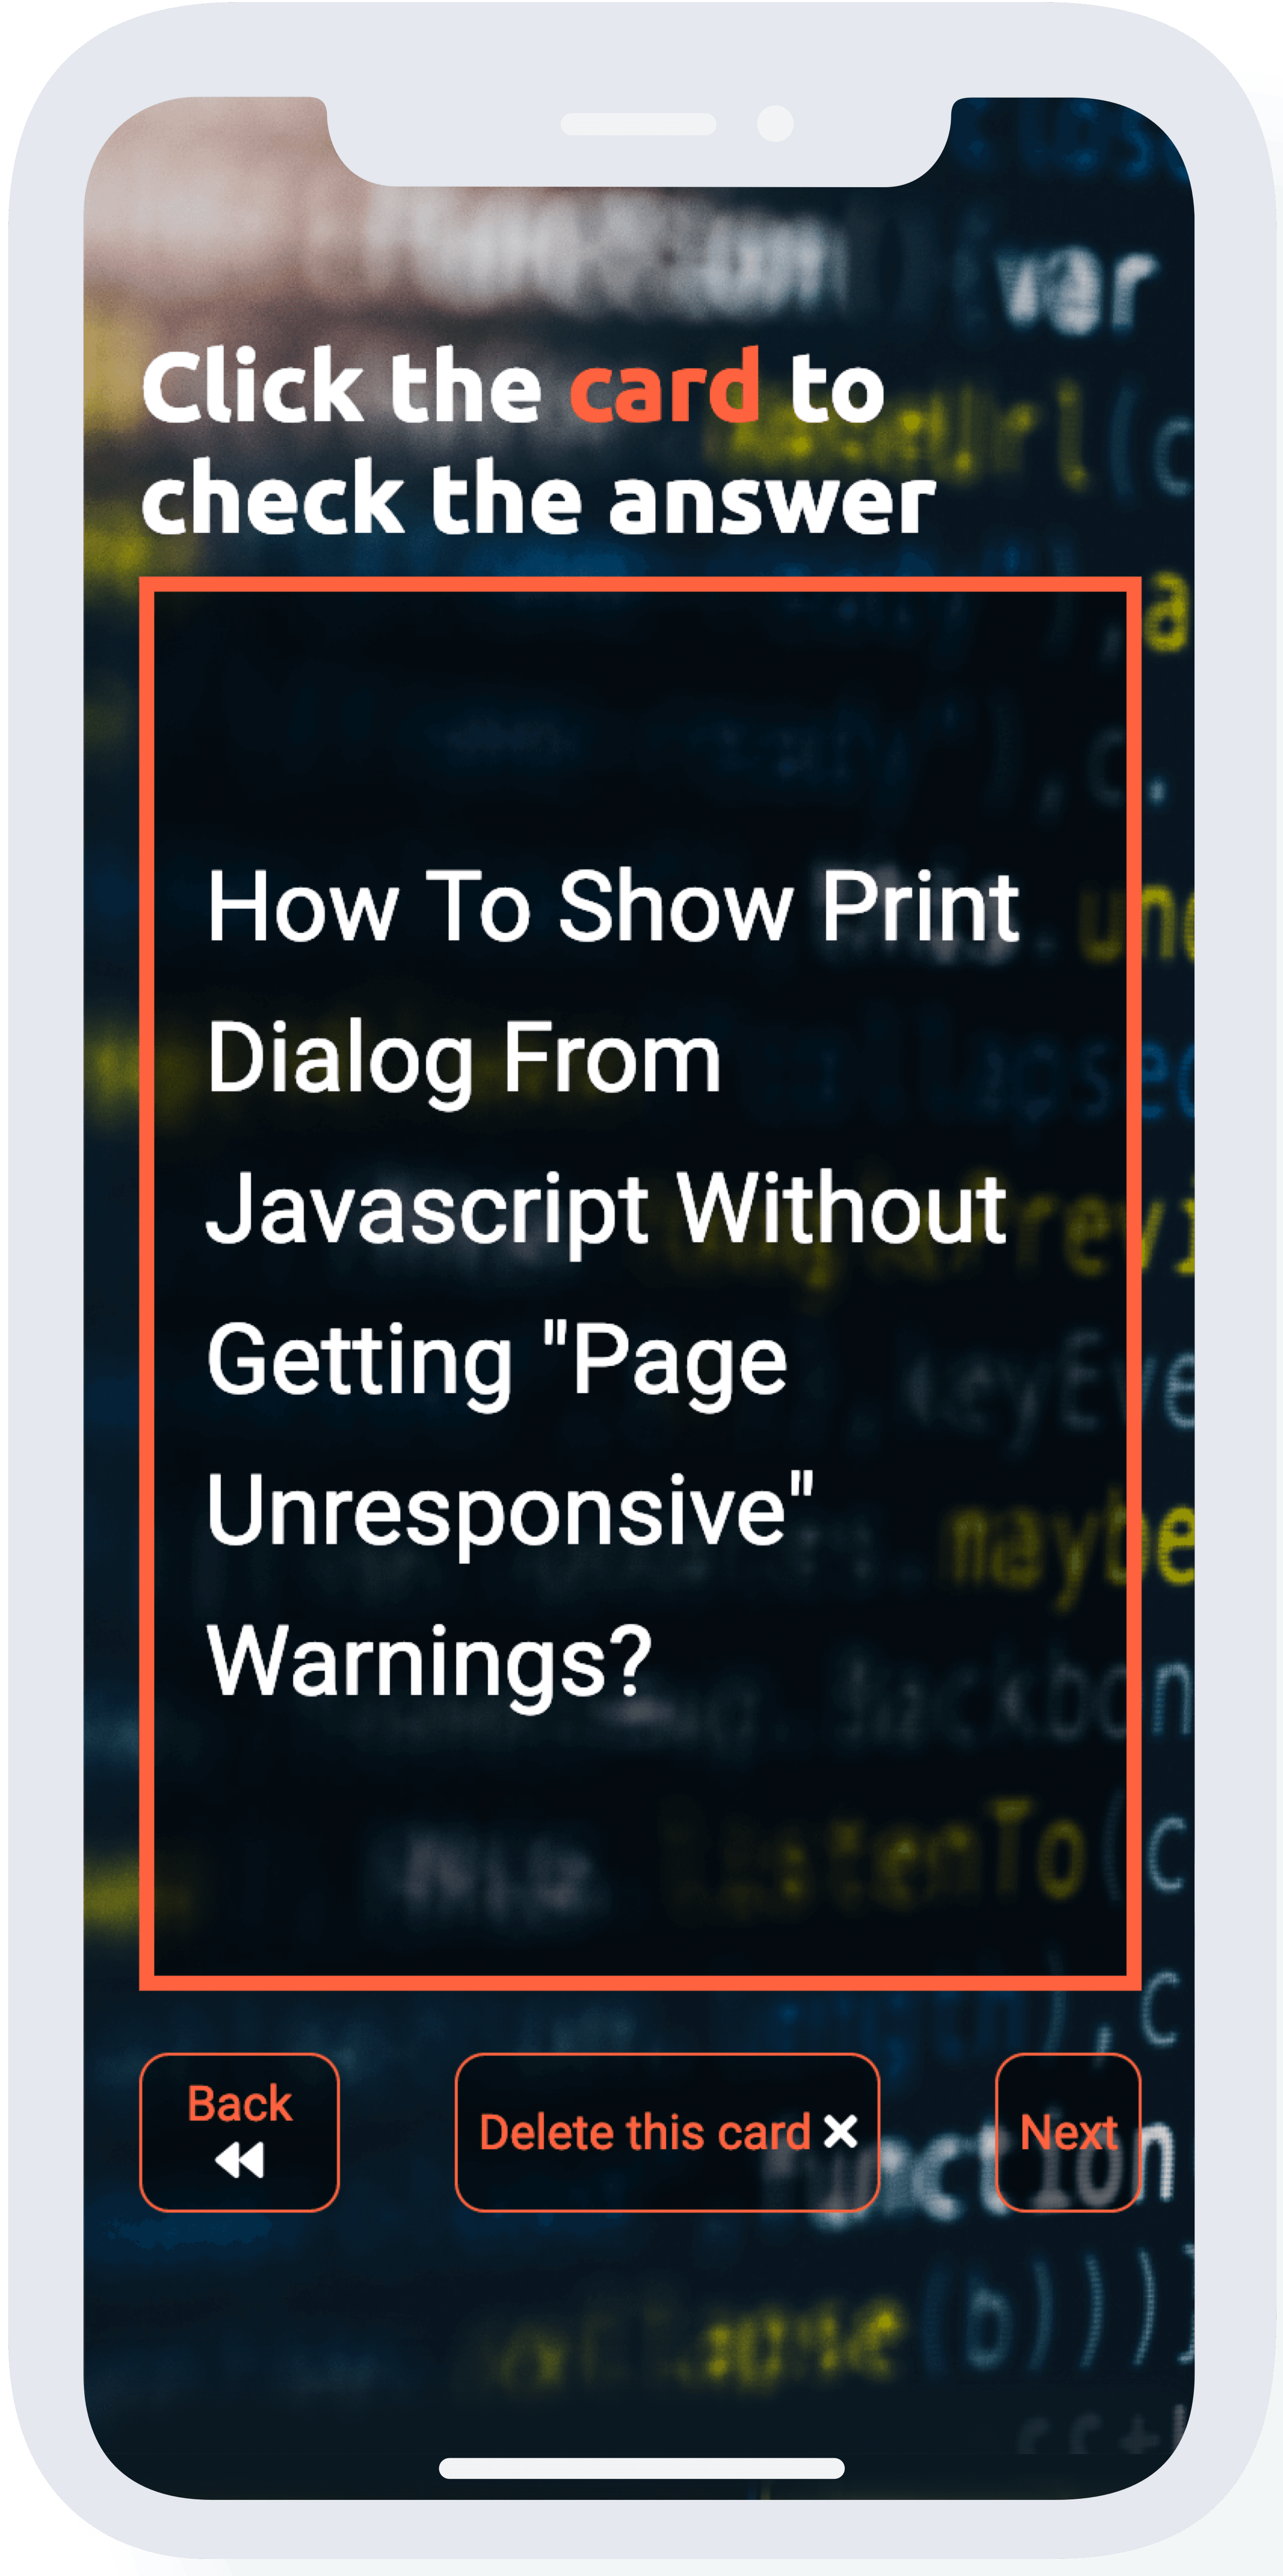 stackoverflow-flashcards image responsive version